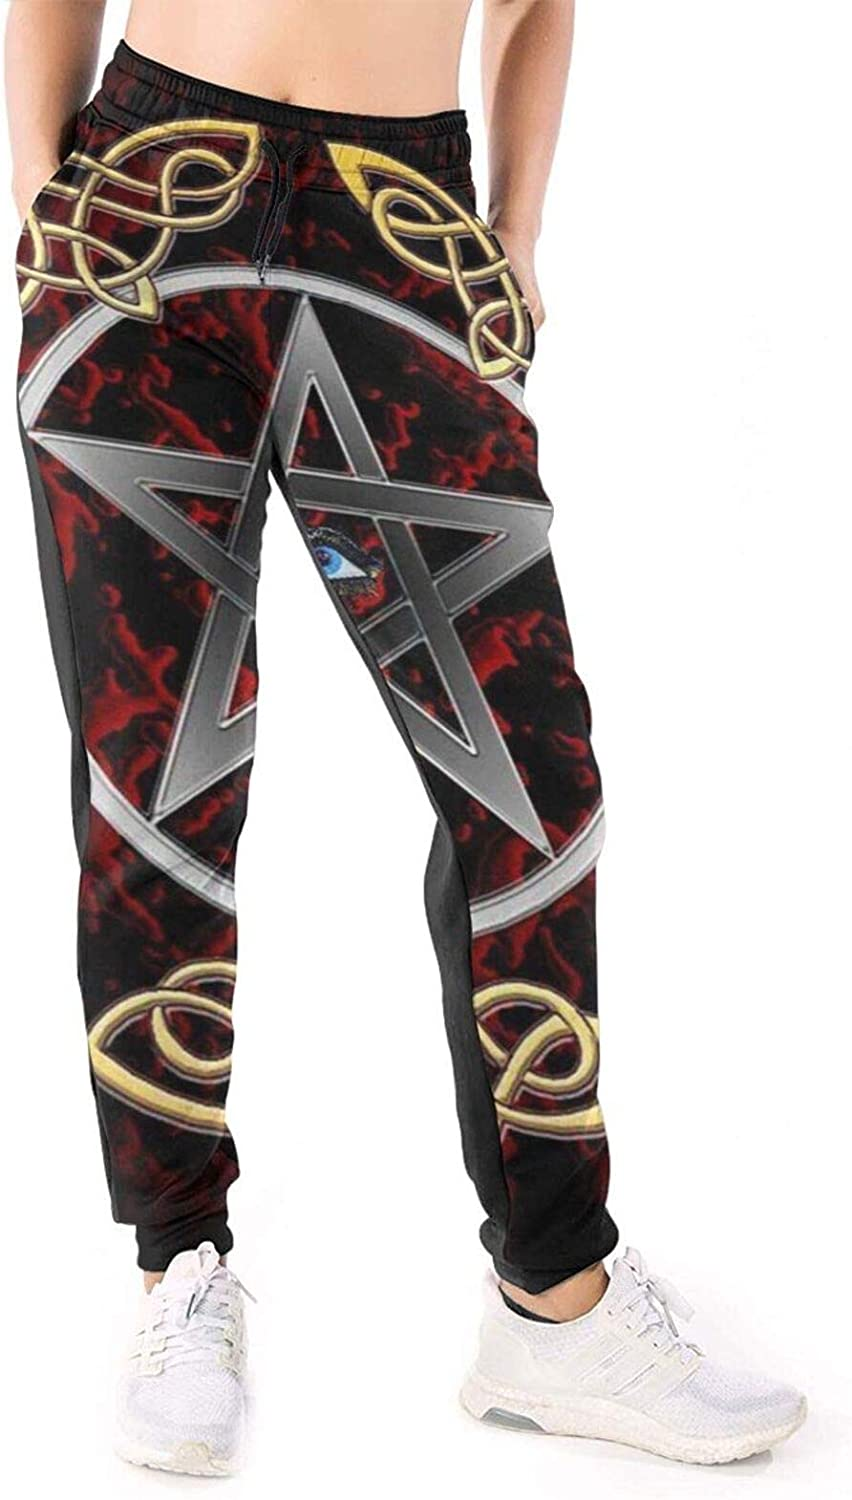 Women Joggers Pants Pentacle Baphomet Third Eye Red Athletic Sweatpants with Pockets Casual Trousers Baggy